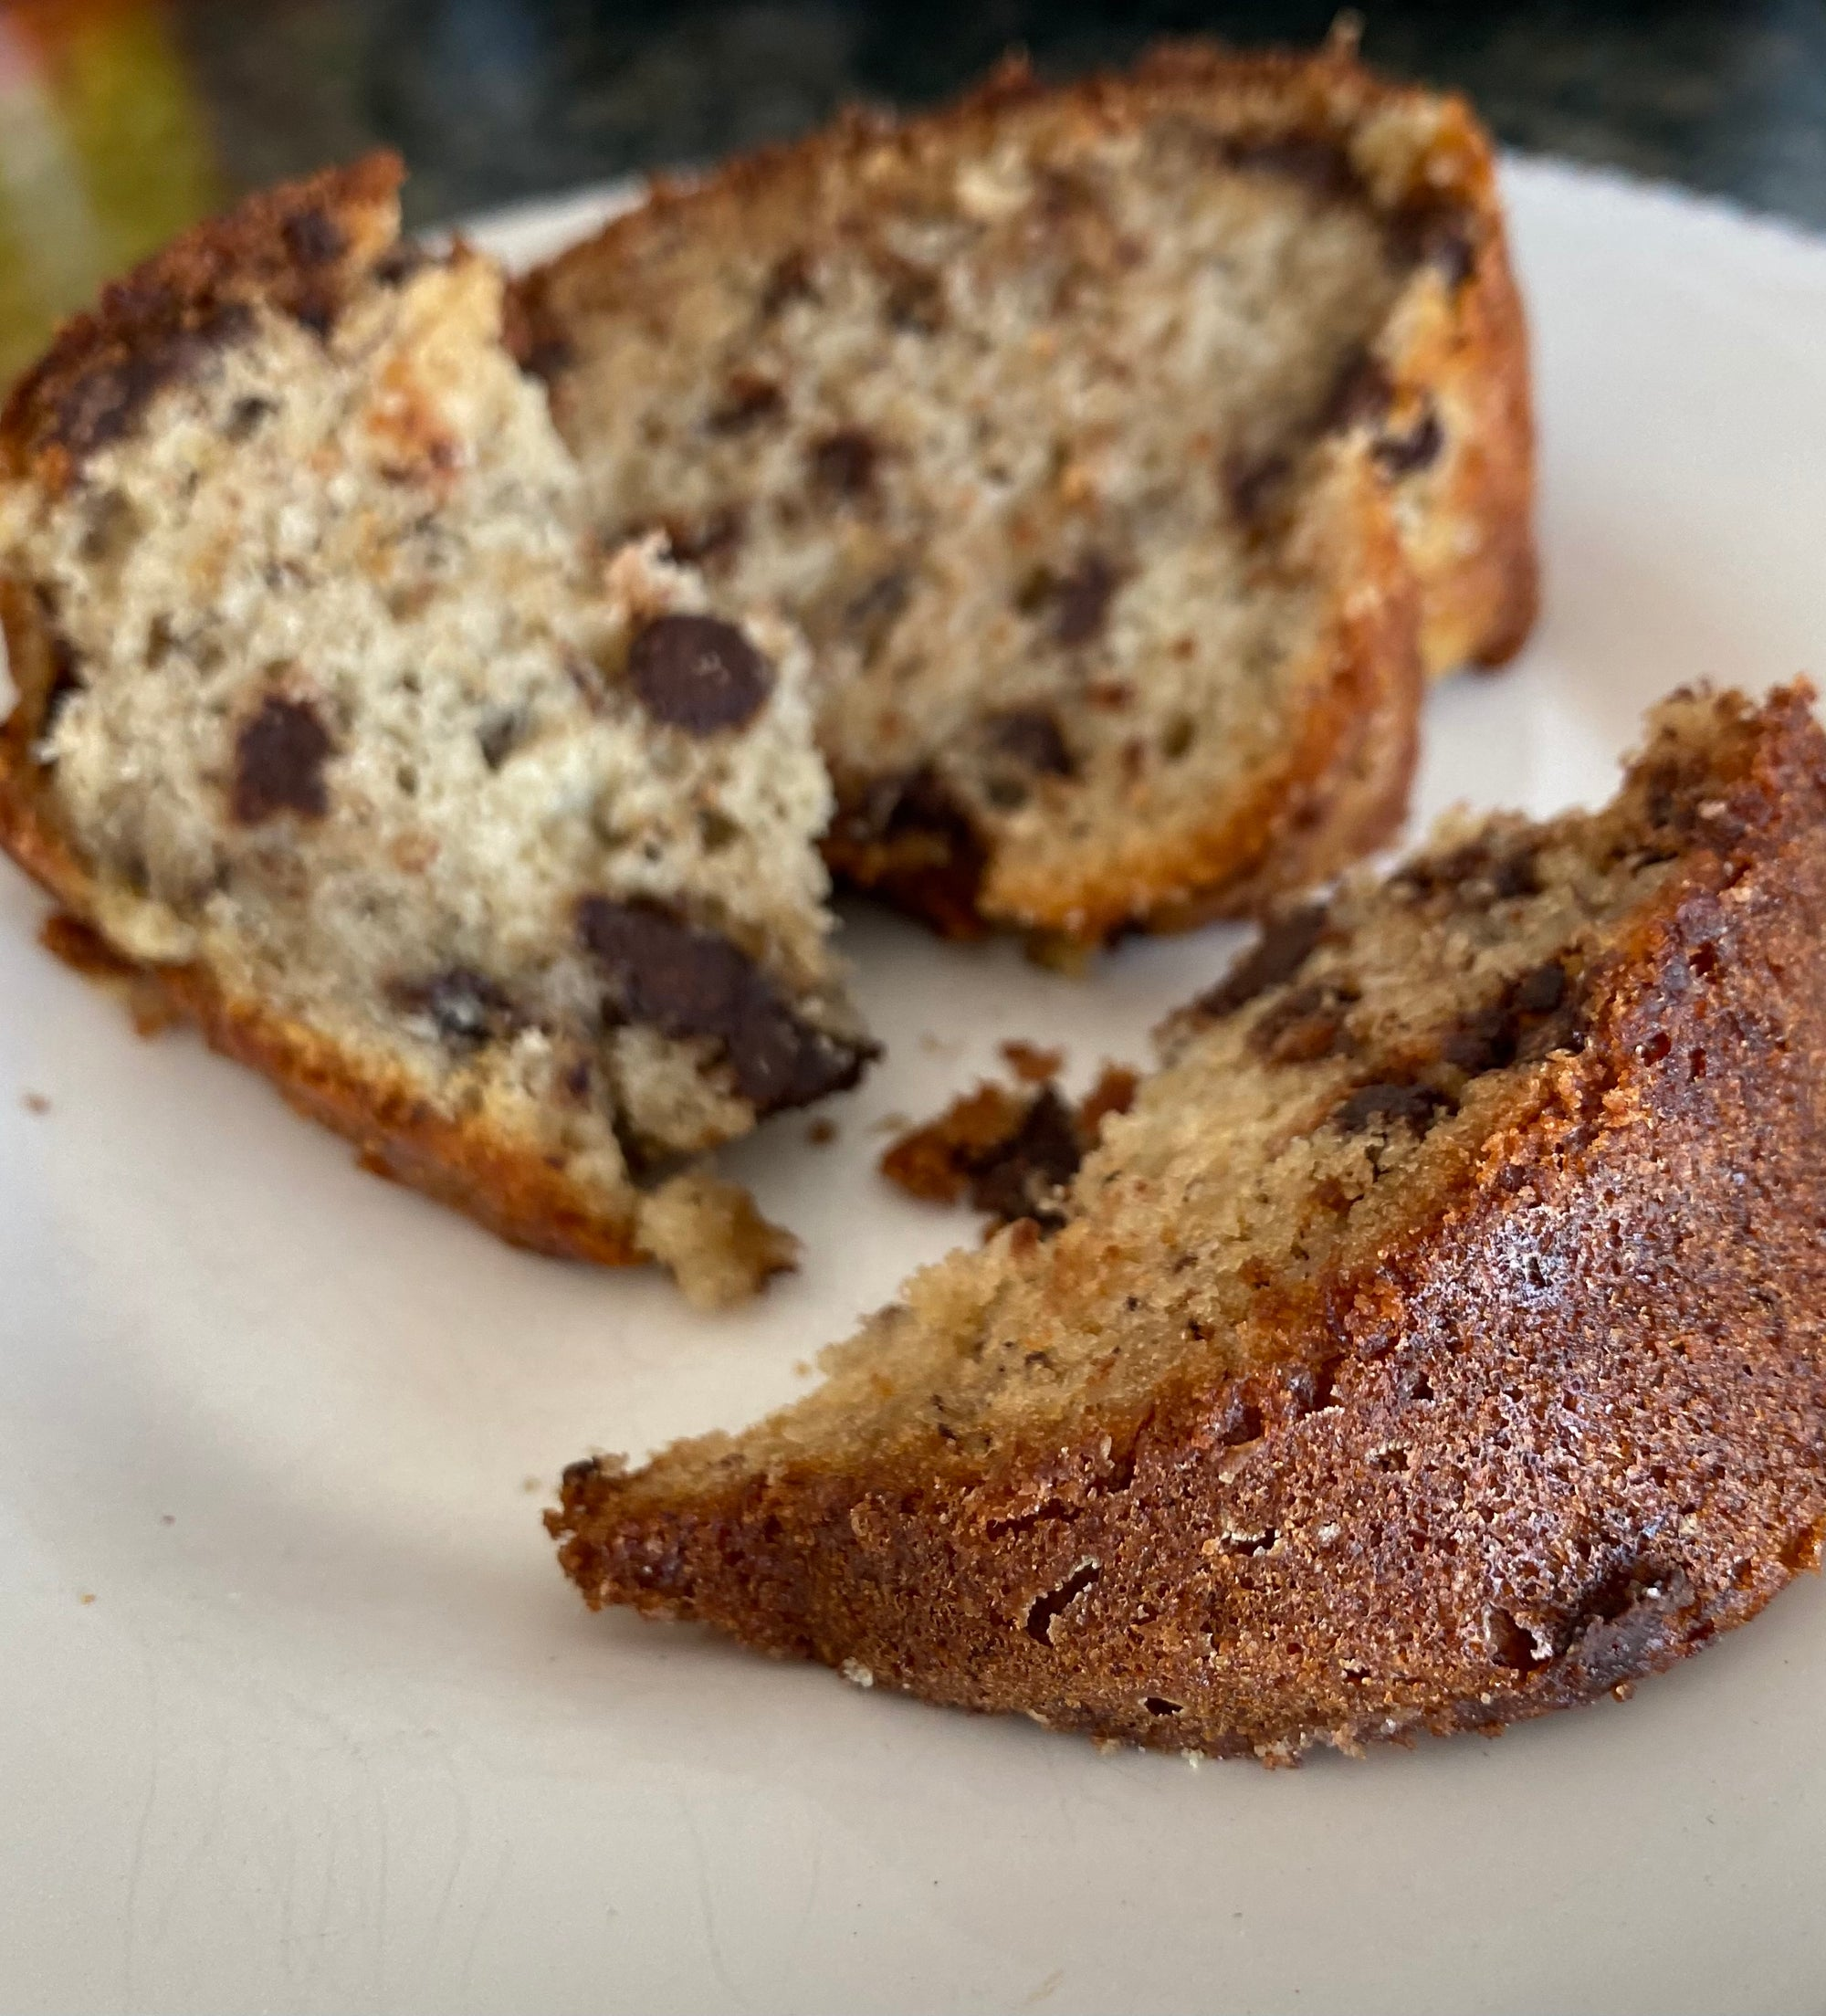 I Found It - A Pretty Perfect Banana Bread!